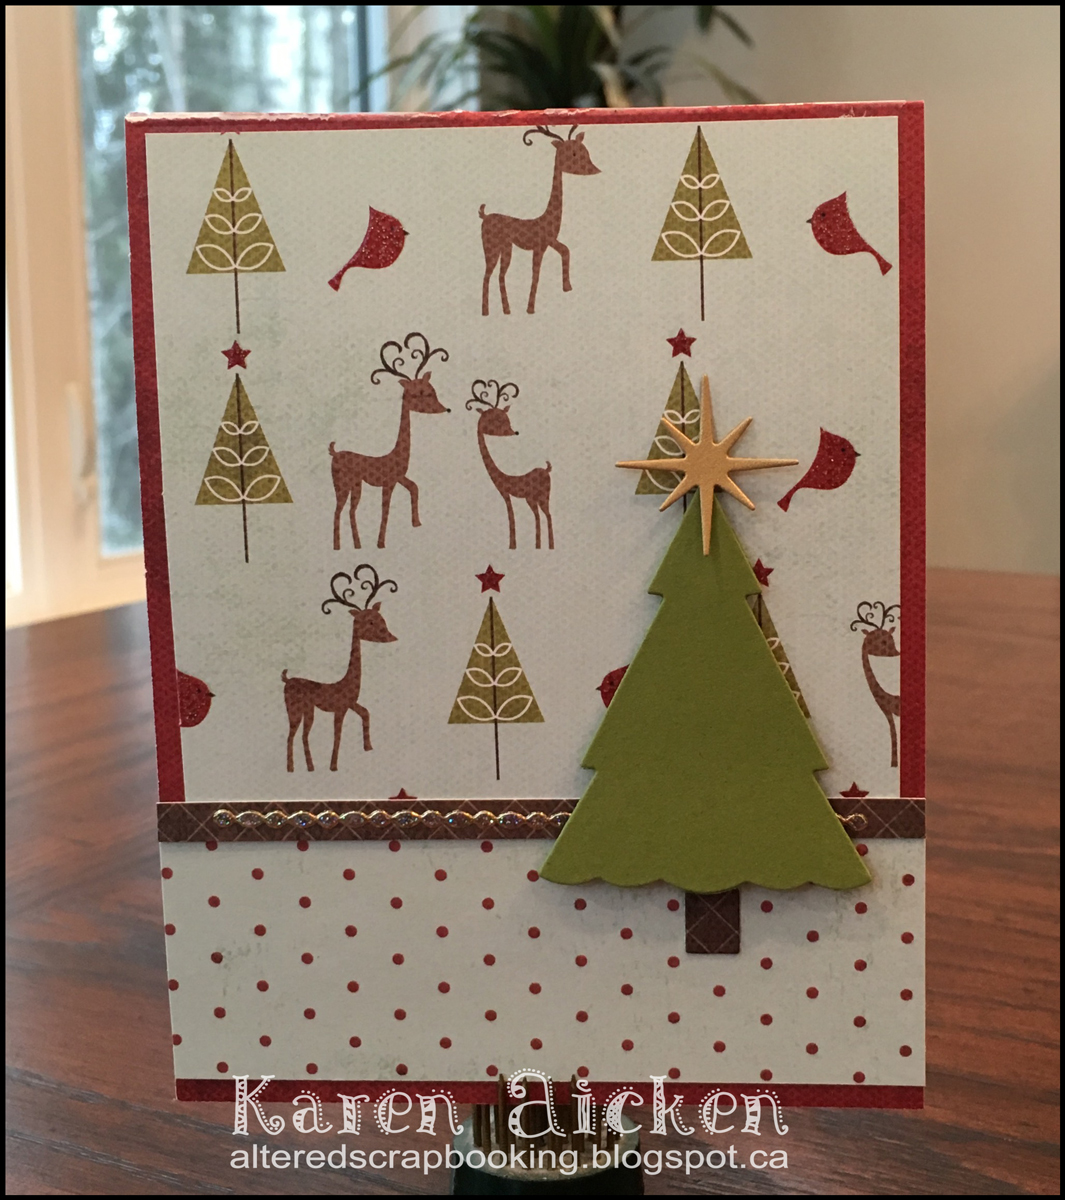 Altered Scrapbooking: Christmas Tree Pop Stand